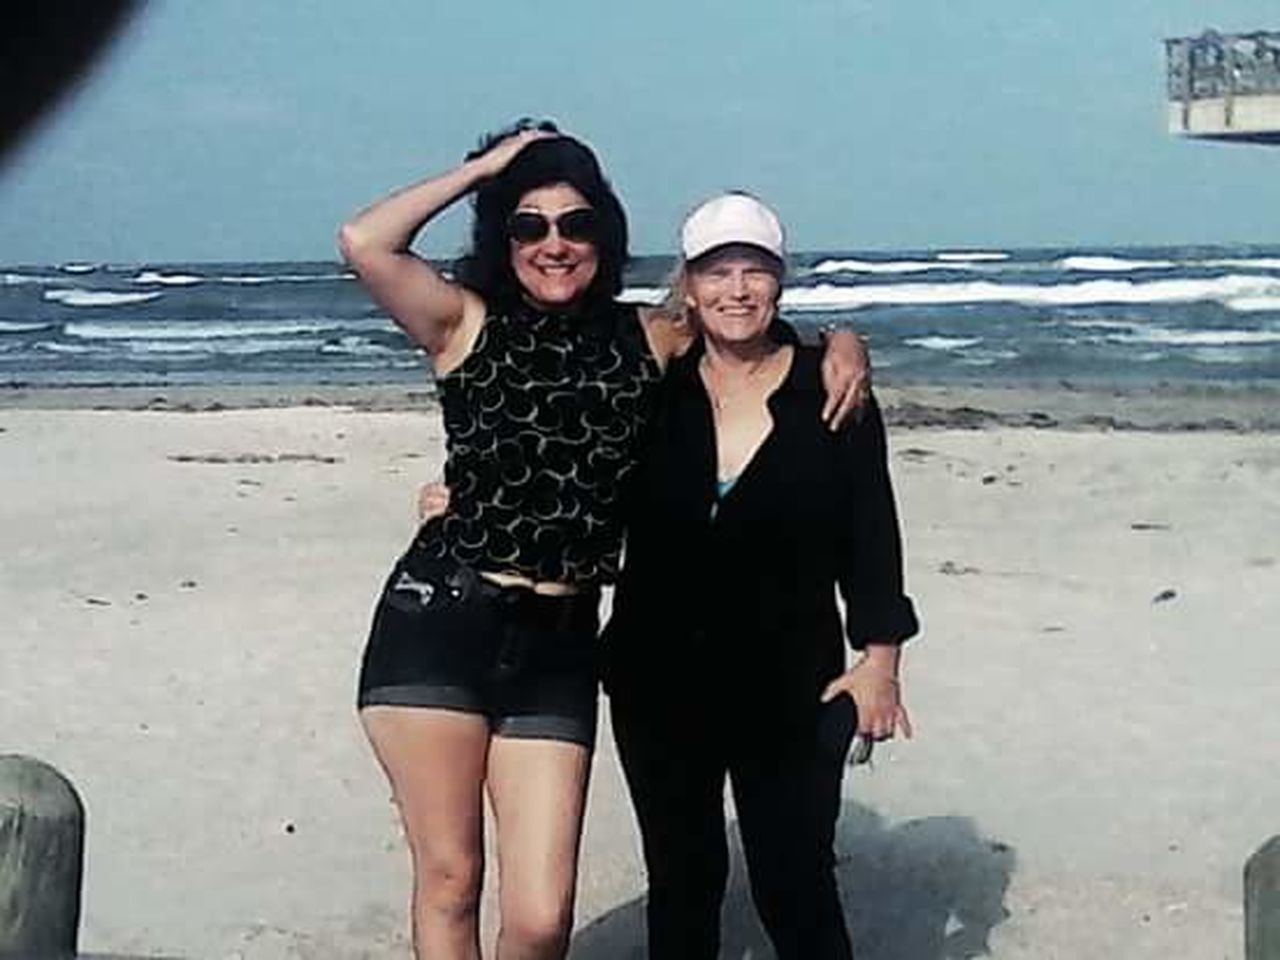 My Bestfriend And I. ♥ March Showcase Weather Photography Warm Winter Cellphone Photography Winter_collection Climate Change(global Warming) Beach Day Open Edit Life Is A Beach Bestfriends We Go Way Back Enjoying Life Toes In The Sand That's Me! the short one, lol! thank you!